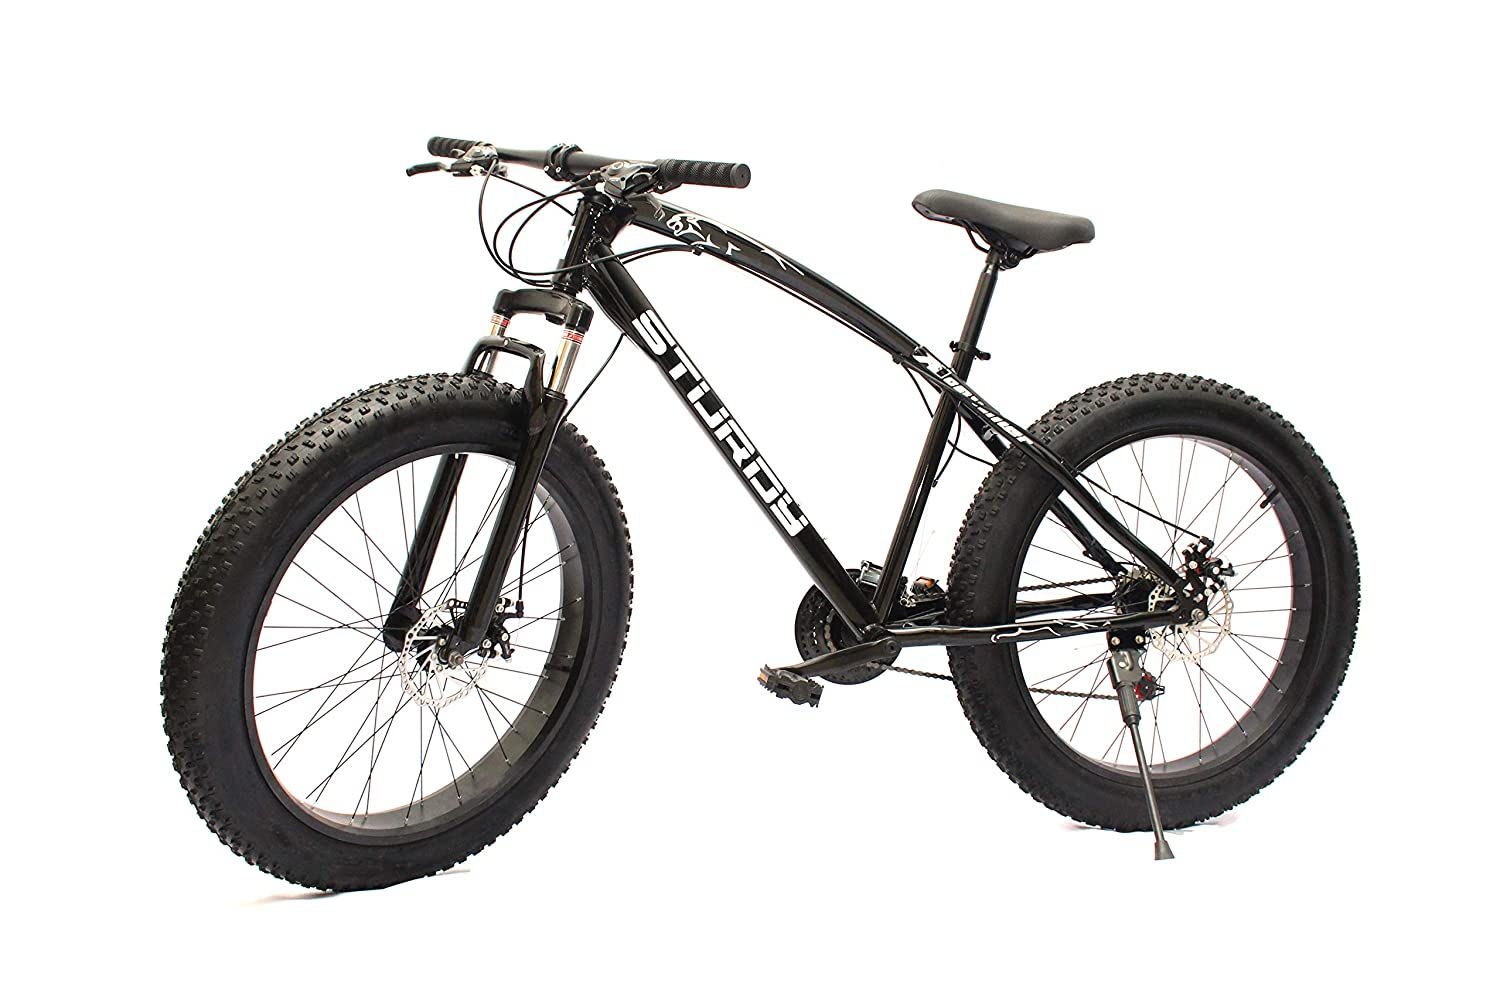 STURDY BIKES Fat Mountain Bike With 26X4 Inch Tires (Black)